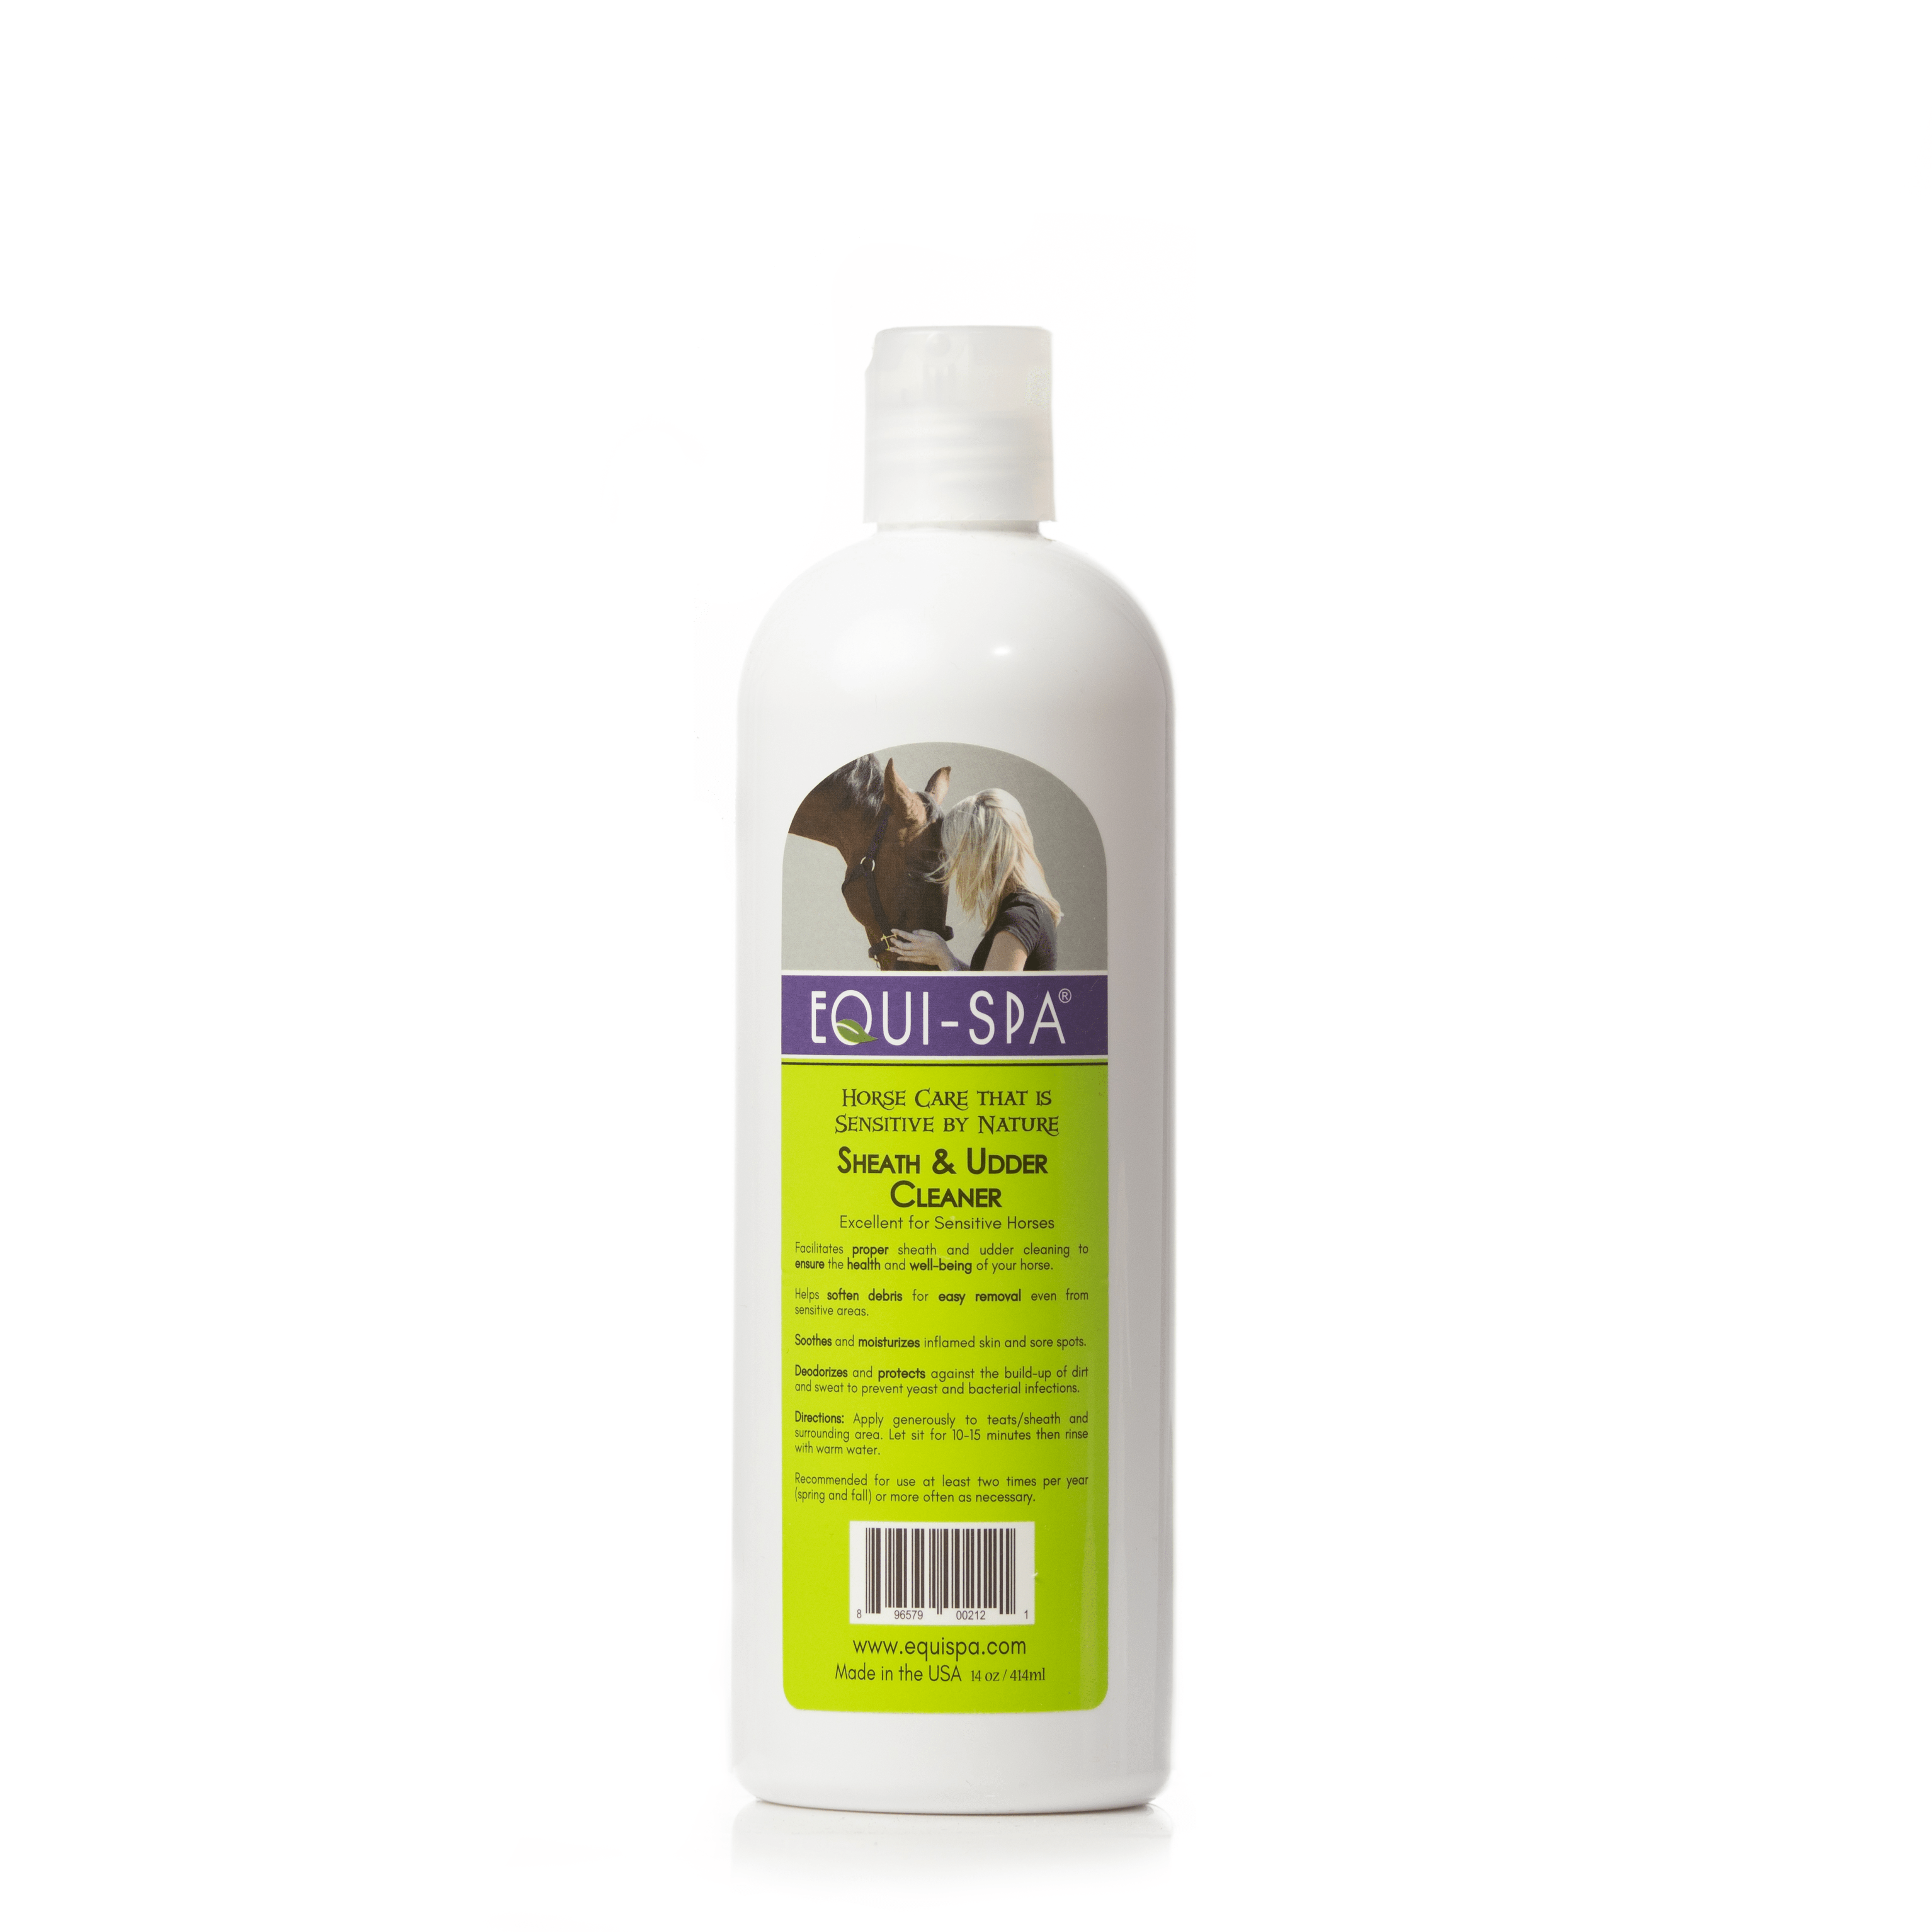 Sheath and Udder Cleaner - Equi-Spa